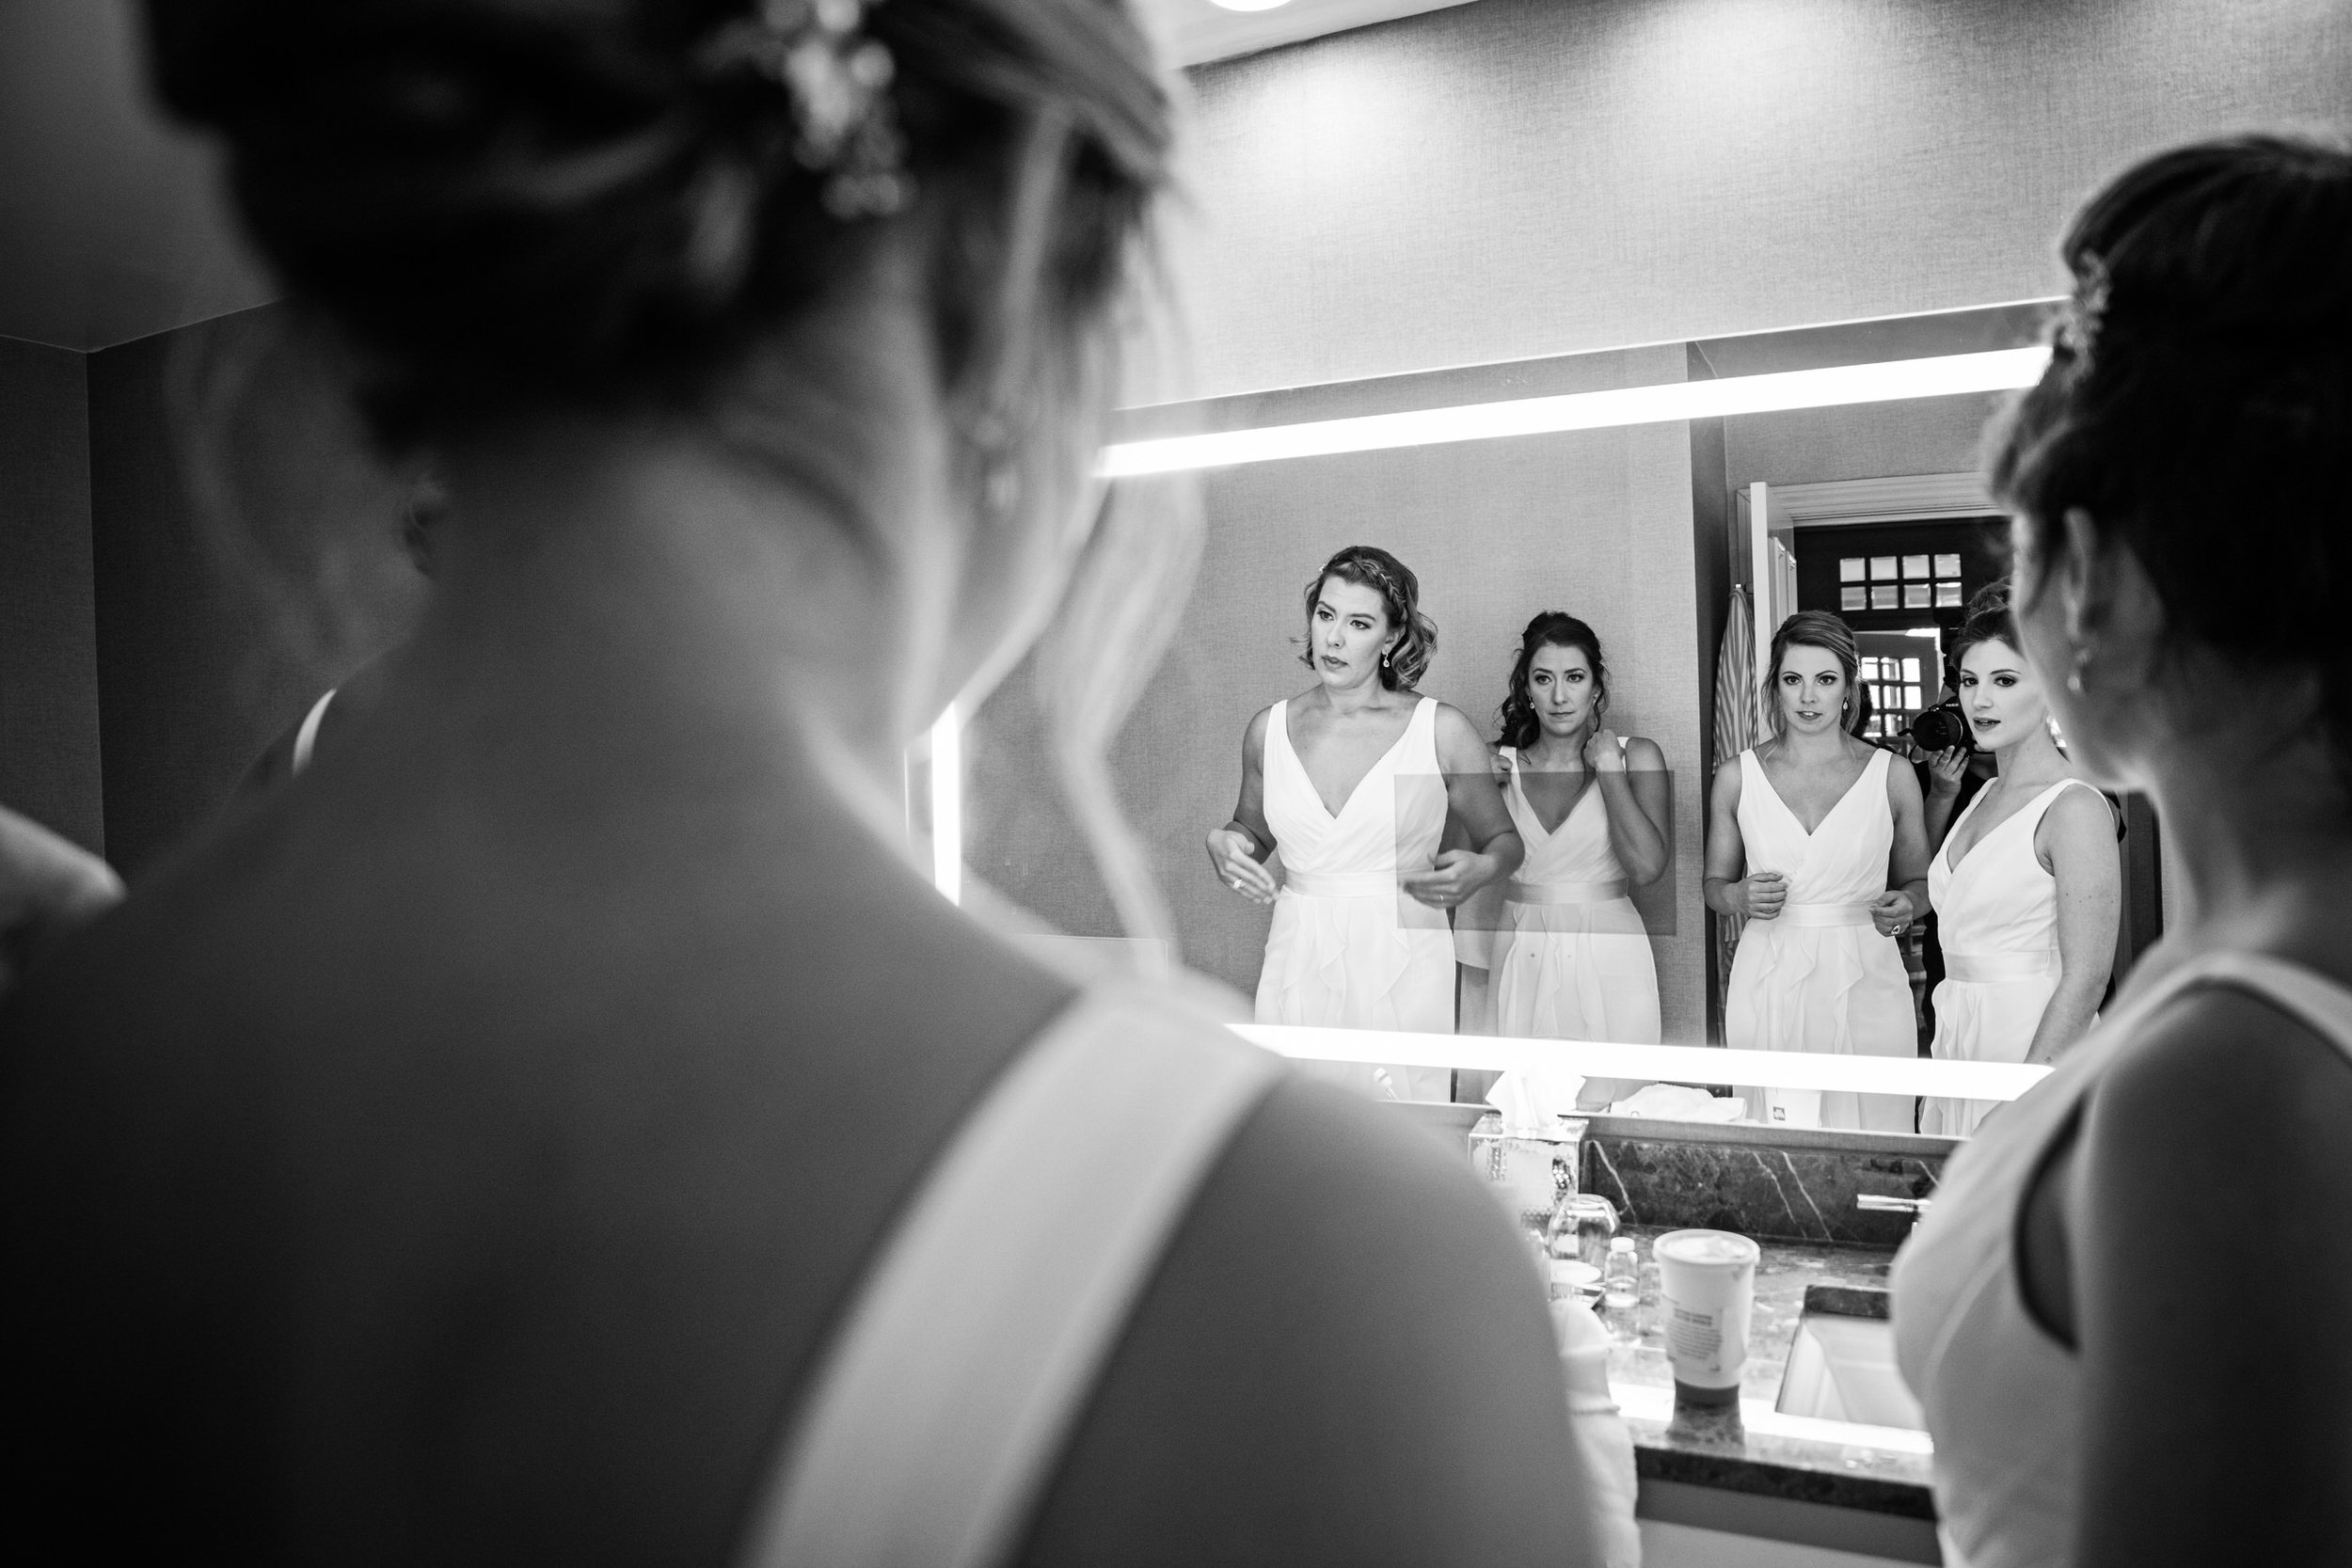 BaltimoreMuseumofIndustryWedding-Megan&Chris-GettingReady-129.jpg